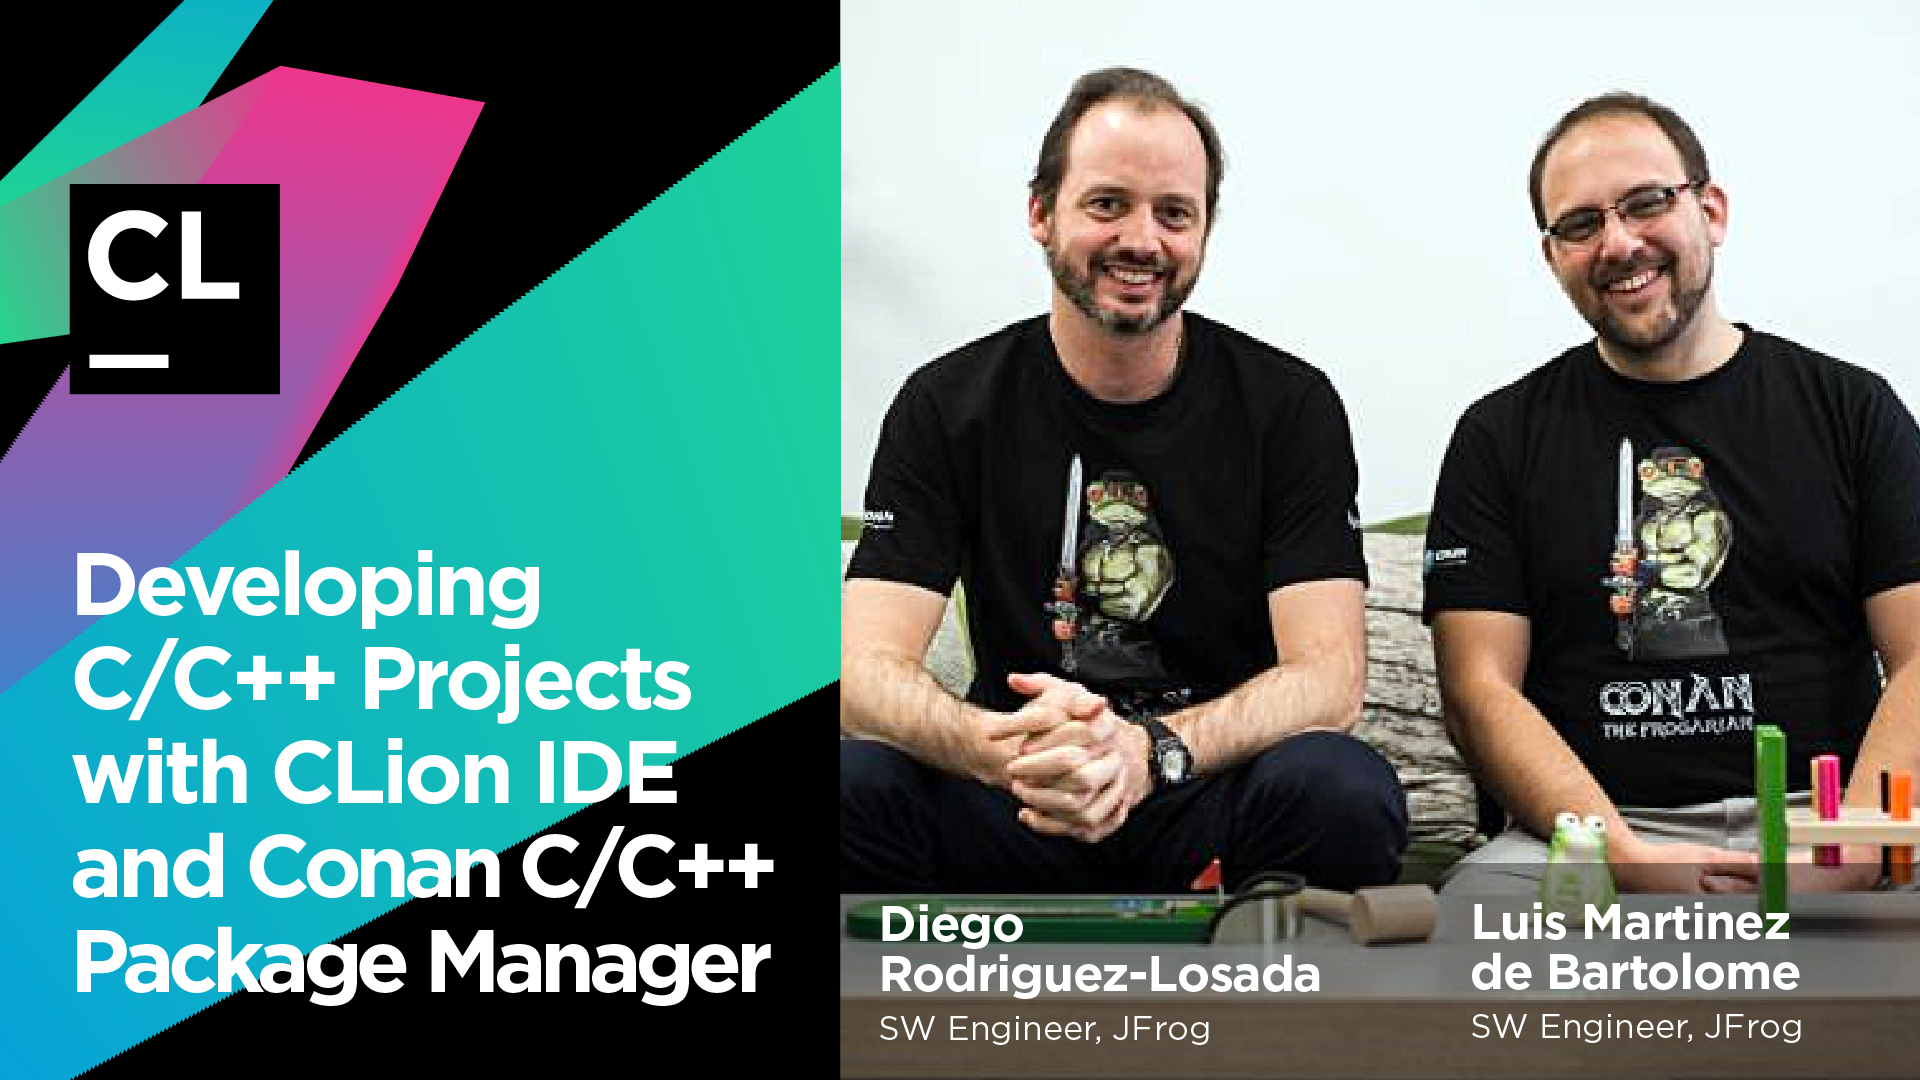 clion_webinar_Developing_C_C++_Projects_with_CLion_IDE_and_Conan_C_C++_Package_Manager